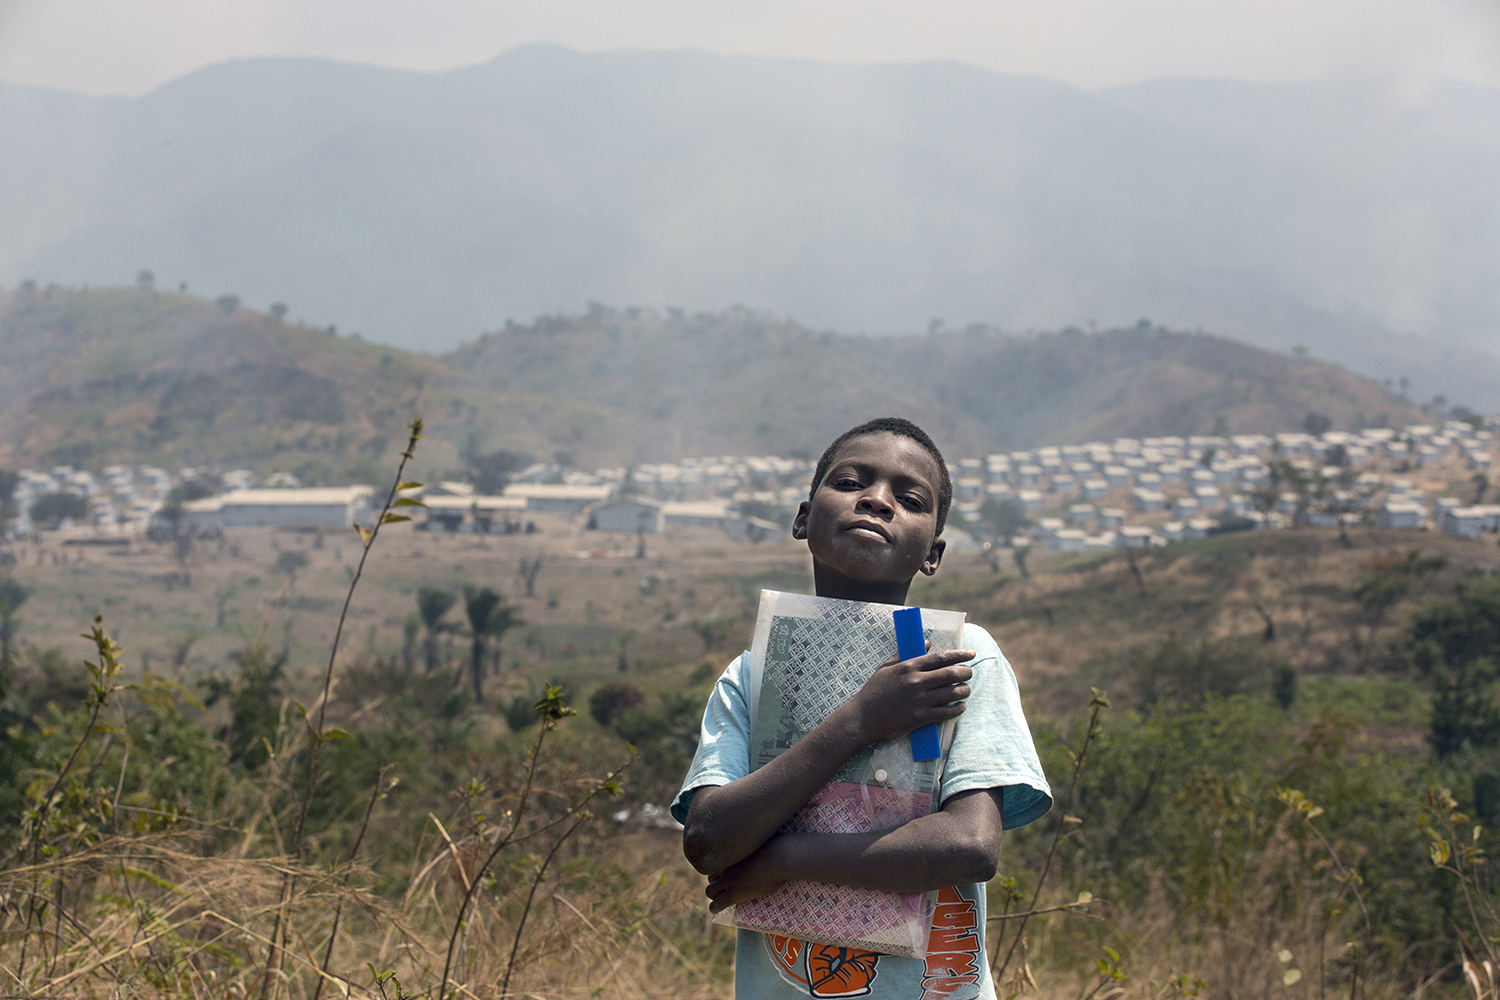 08_20150728_War Child-Burundian Refugee Camp Lusenda-Jeppe Schilder.jpg